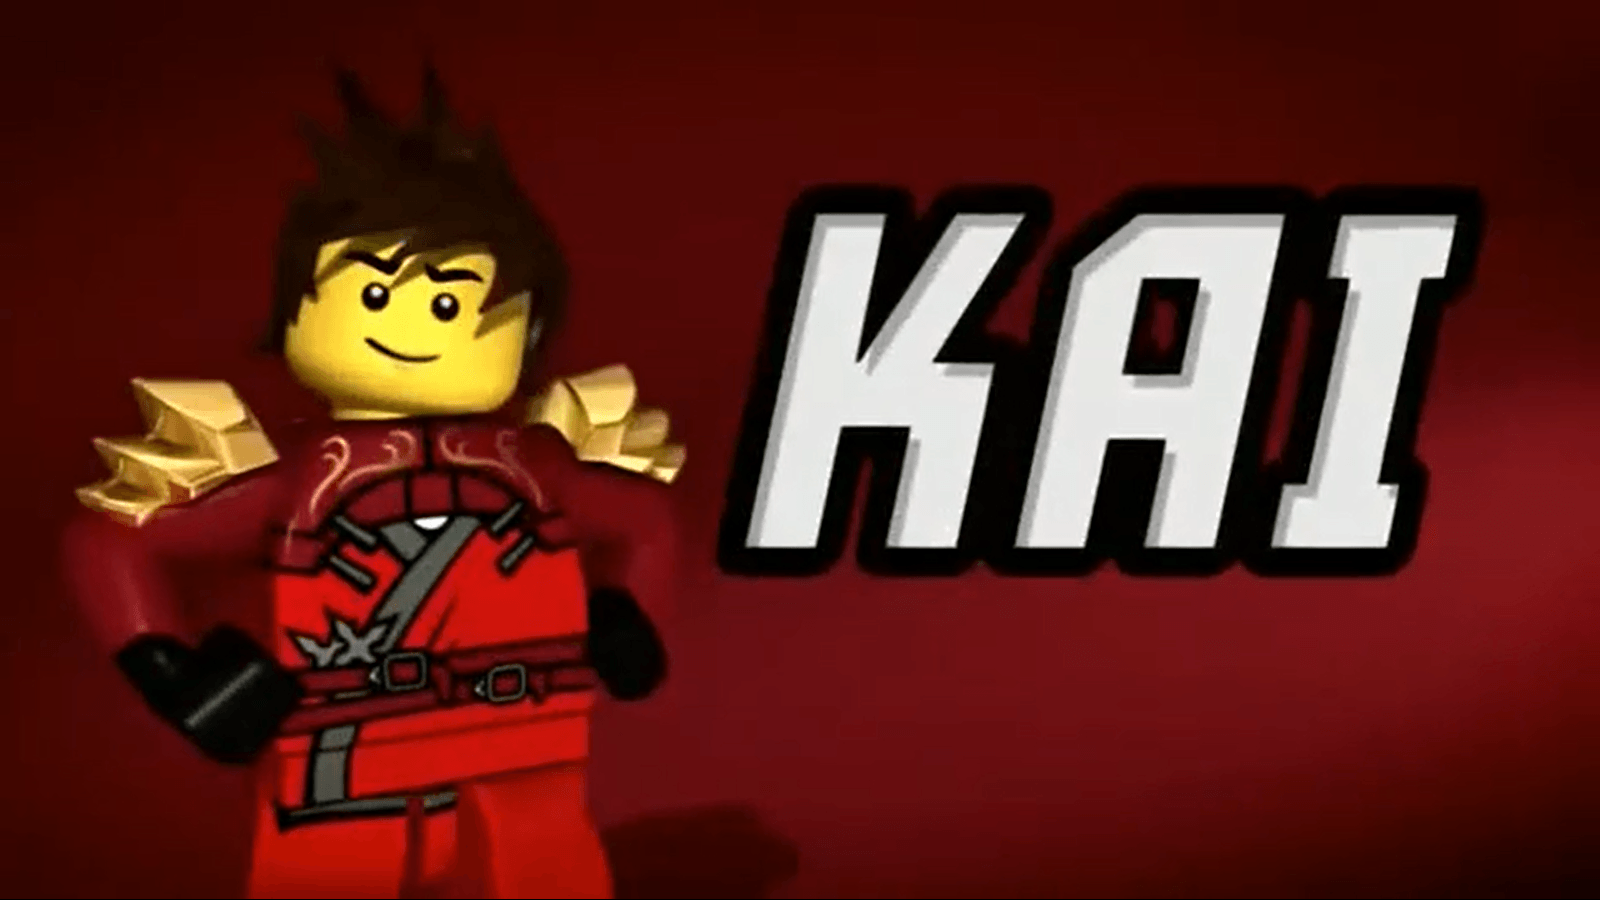 Lego Ninjago Wallpapers